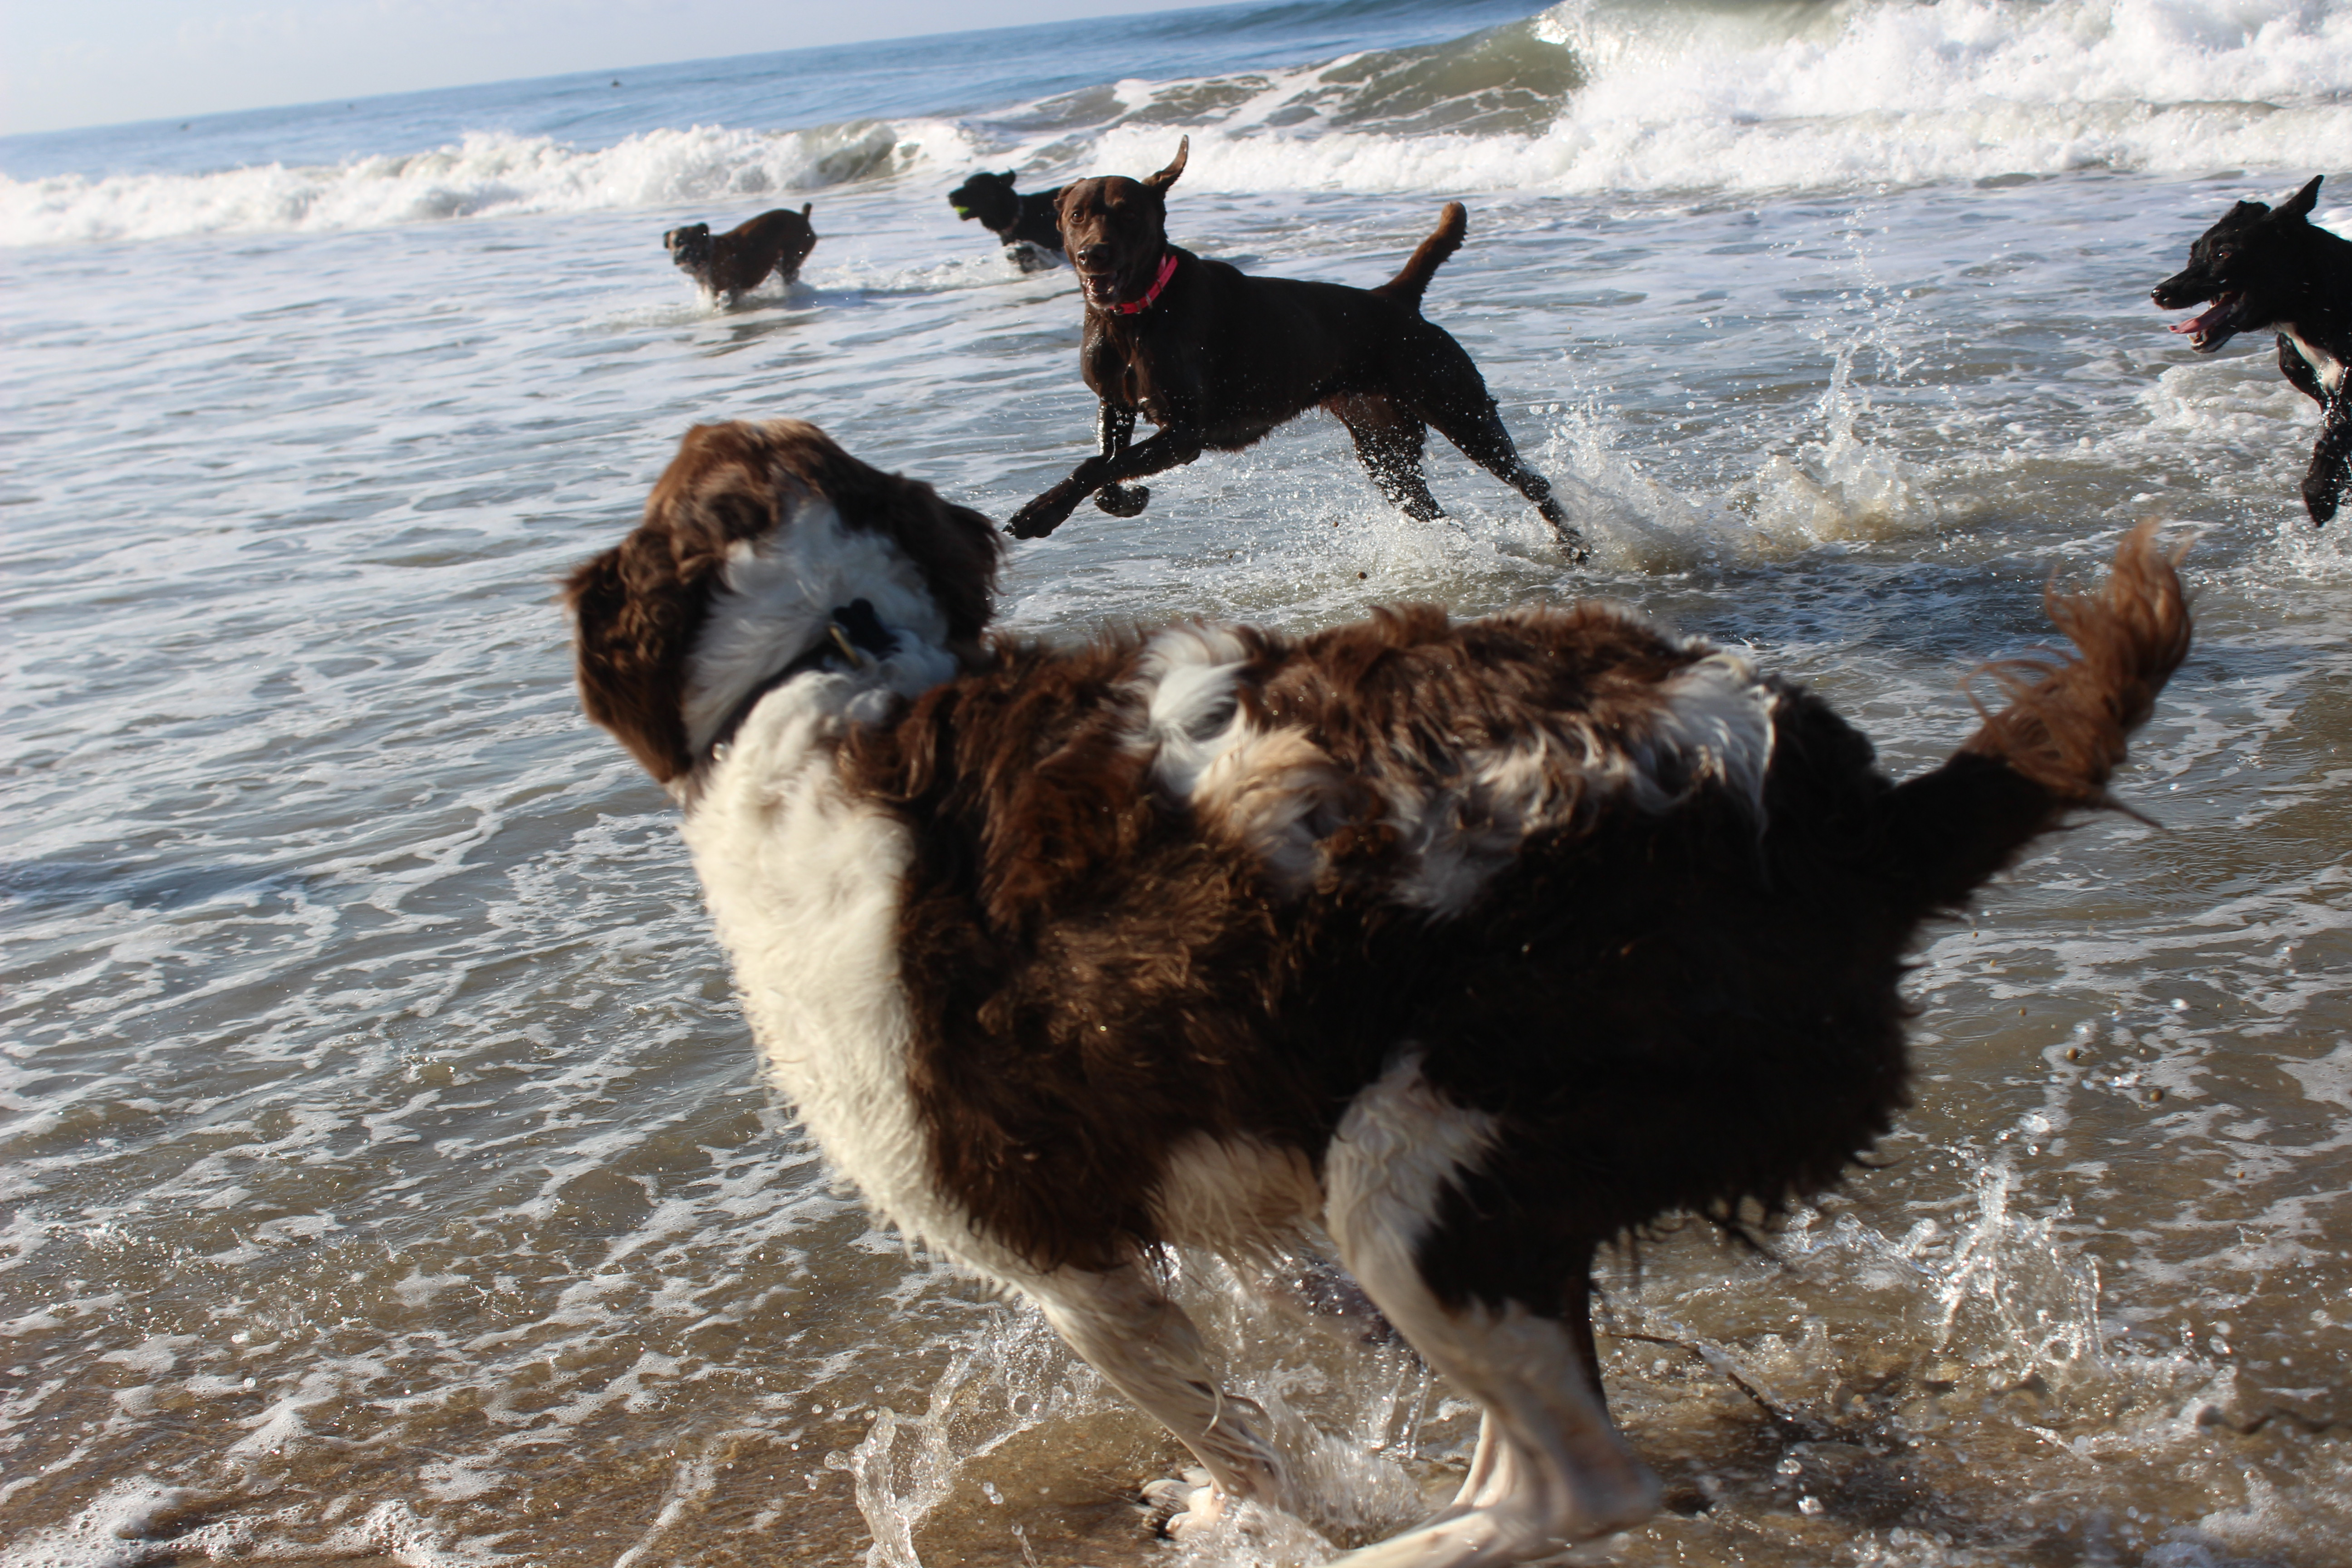 Making friends at the dog beach!